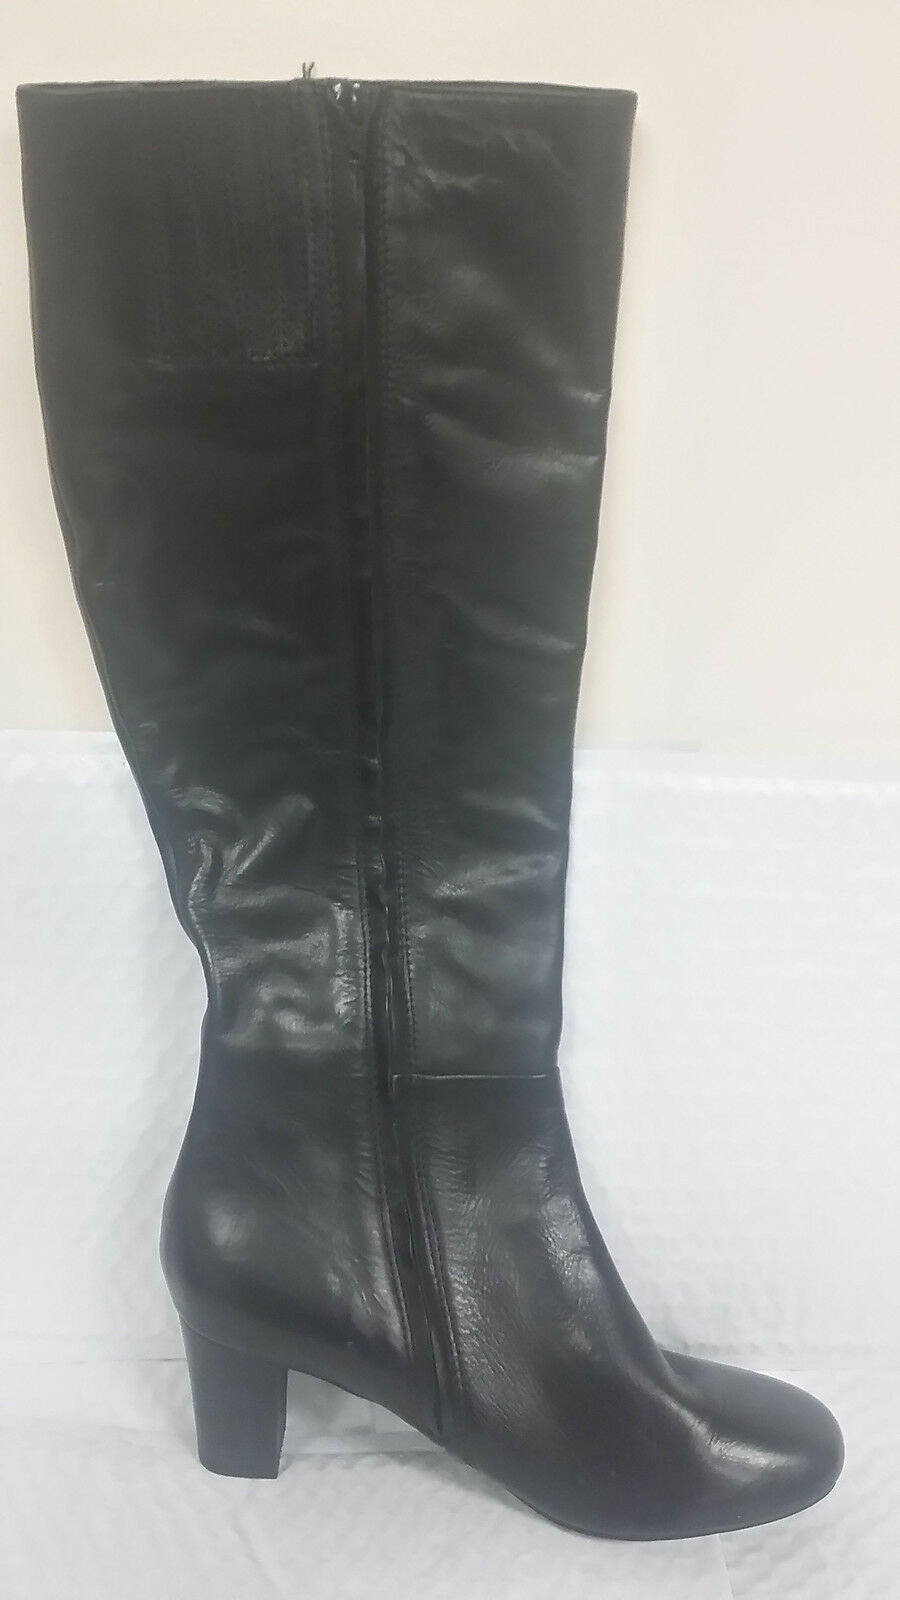 New! Women's J Jill Tall Leather Zip-Up Boots Size 9.5 Black  A69